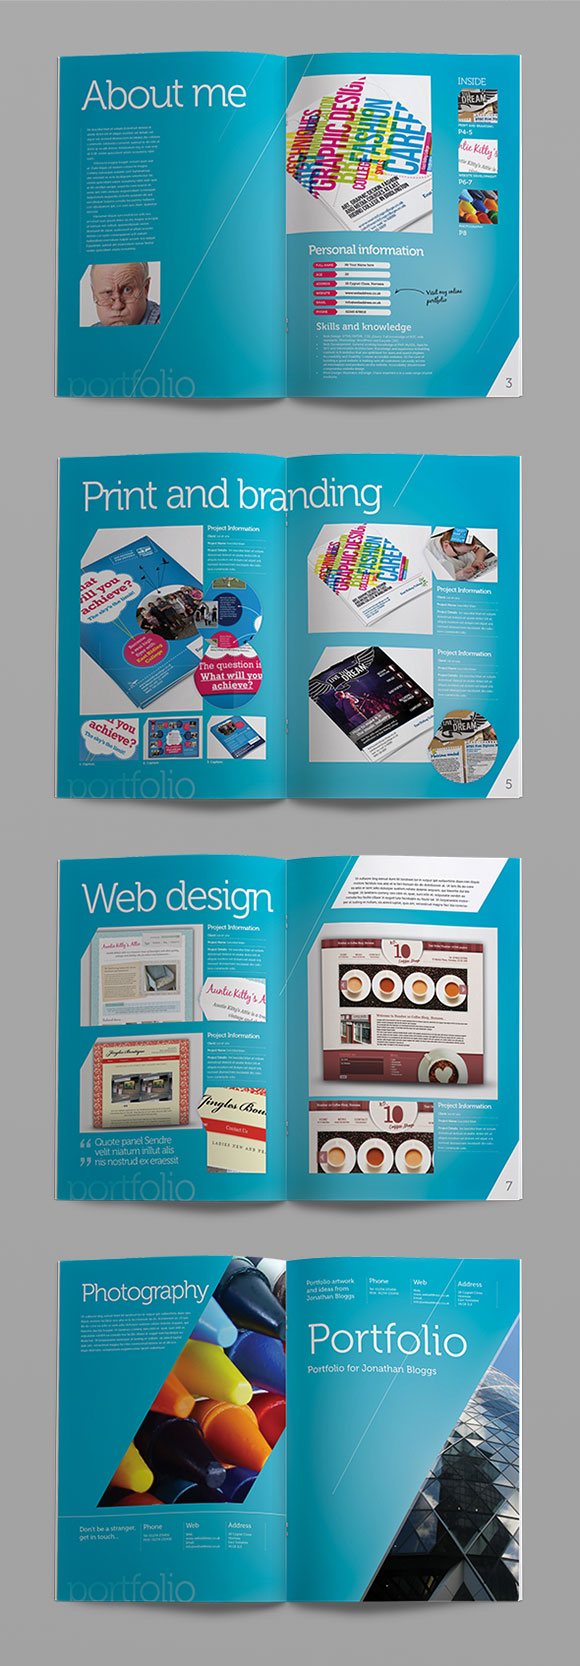 Free Eight Page InDesign Portfolio Template - CRS InDesign Templates